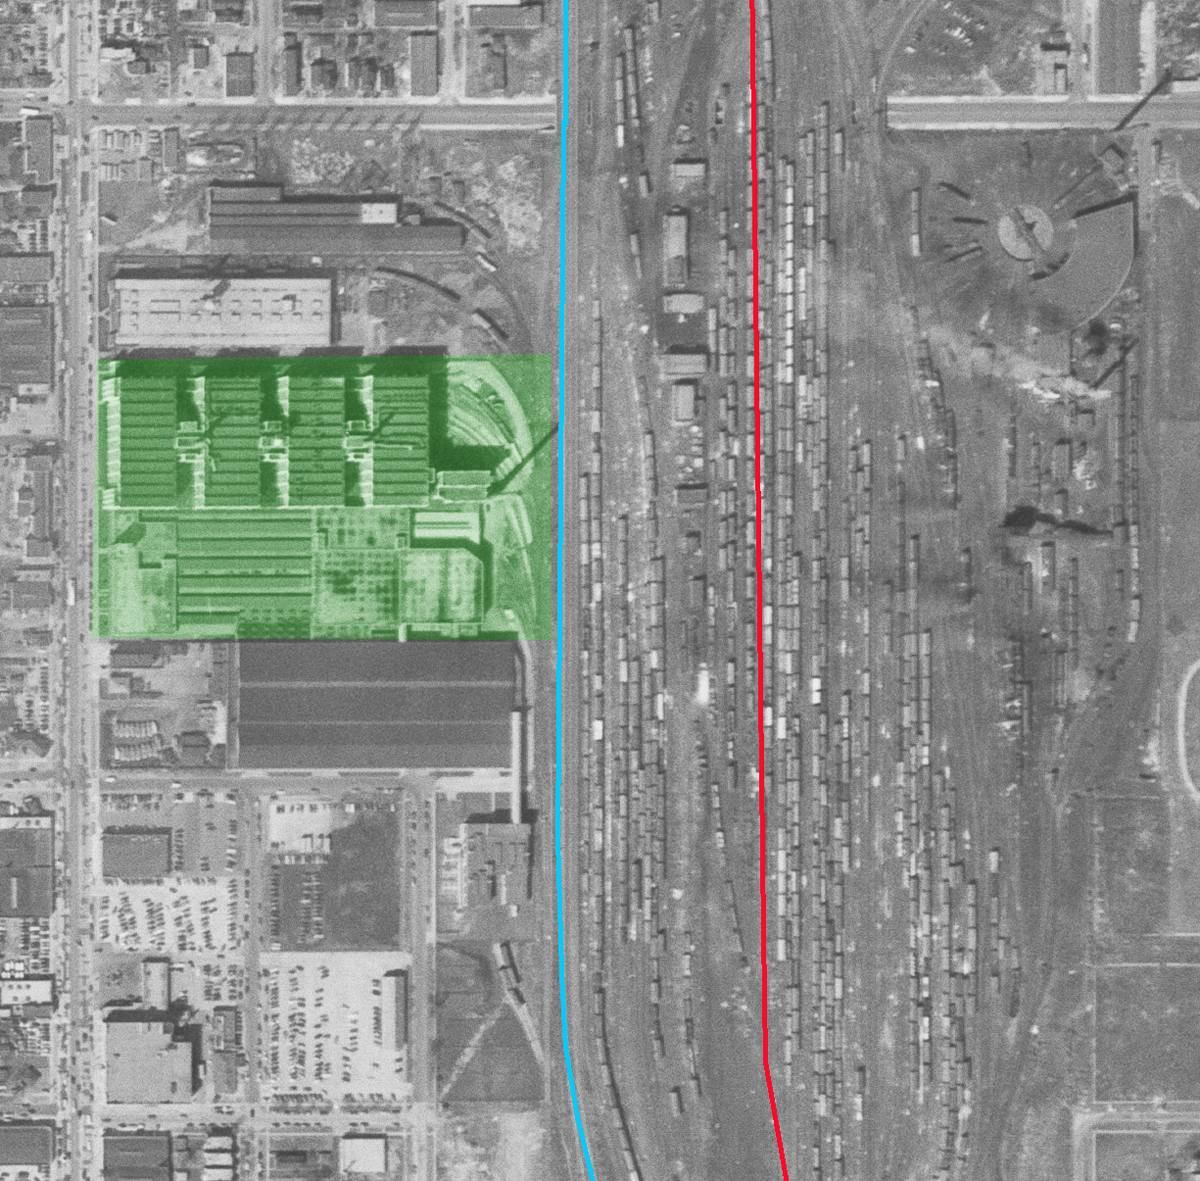 western avenue is at the left side of the photo running north south top bottom the east west cross streets are w 59th near the top of the image and